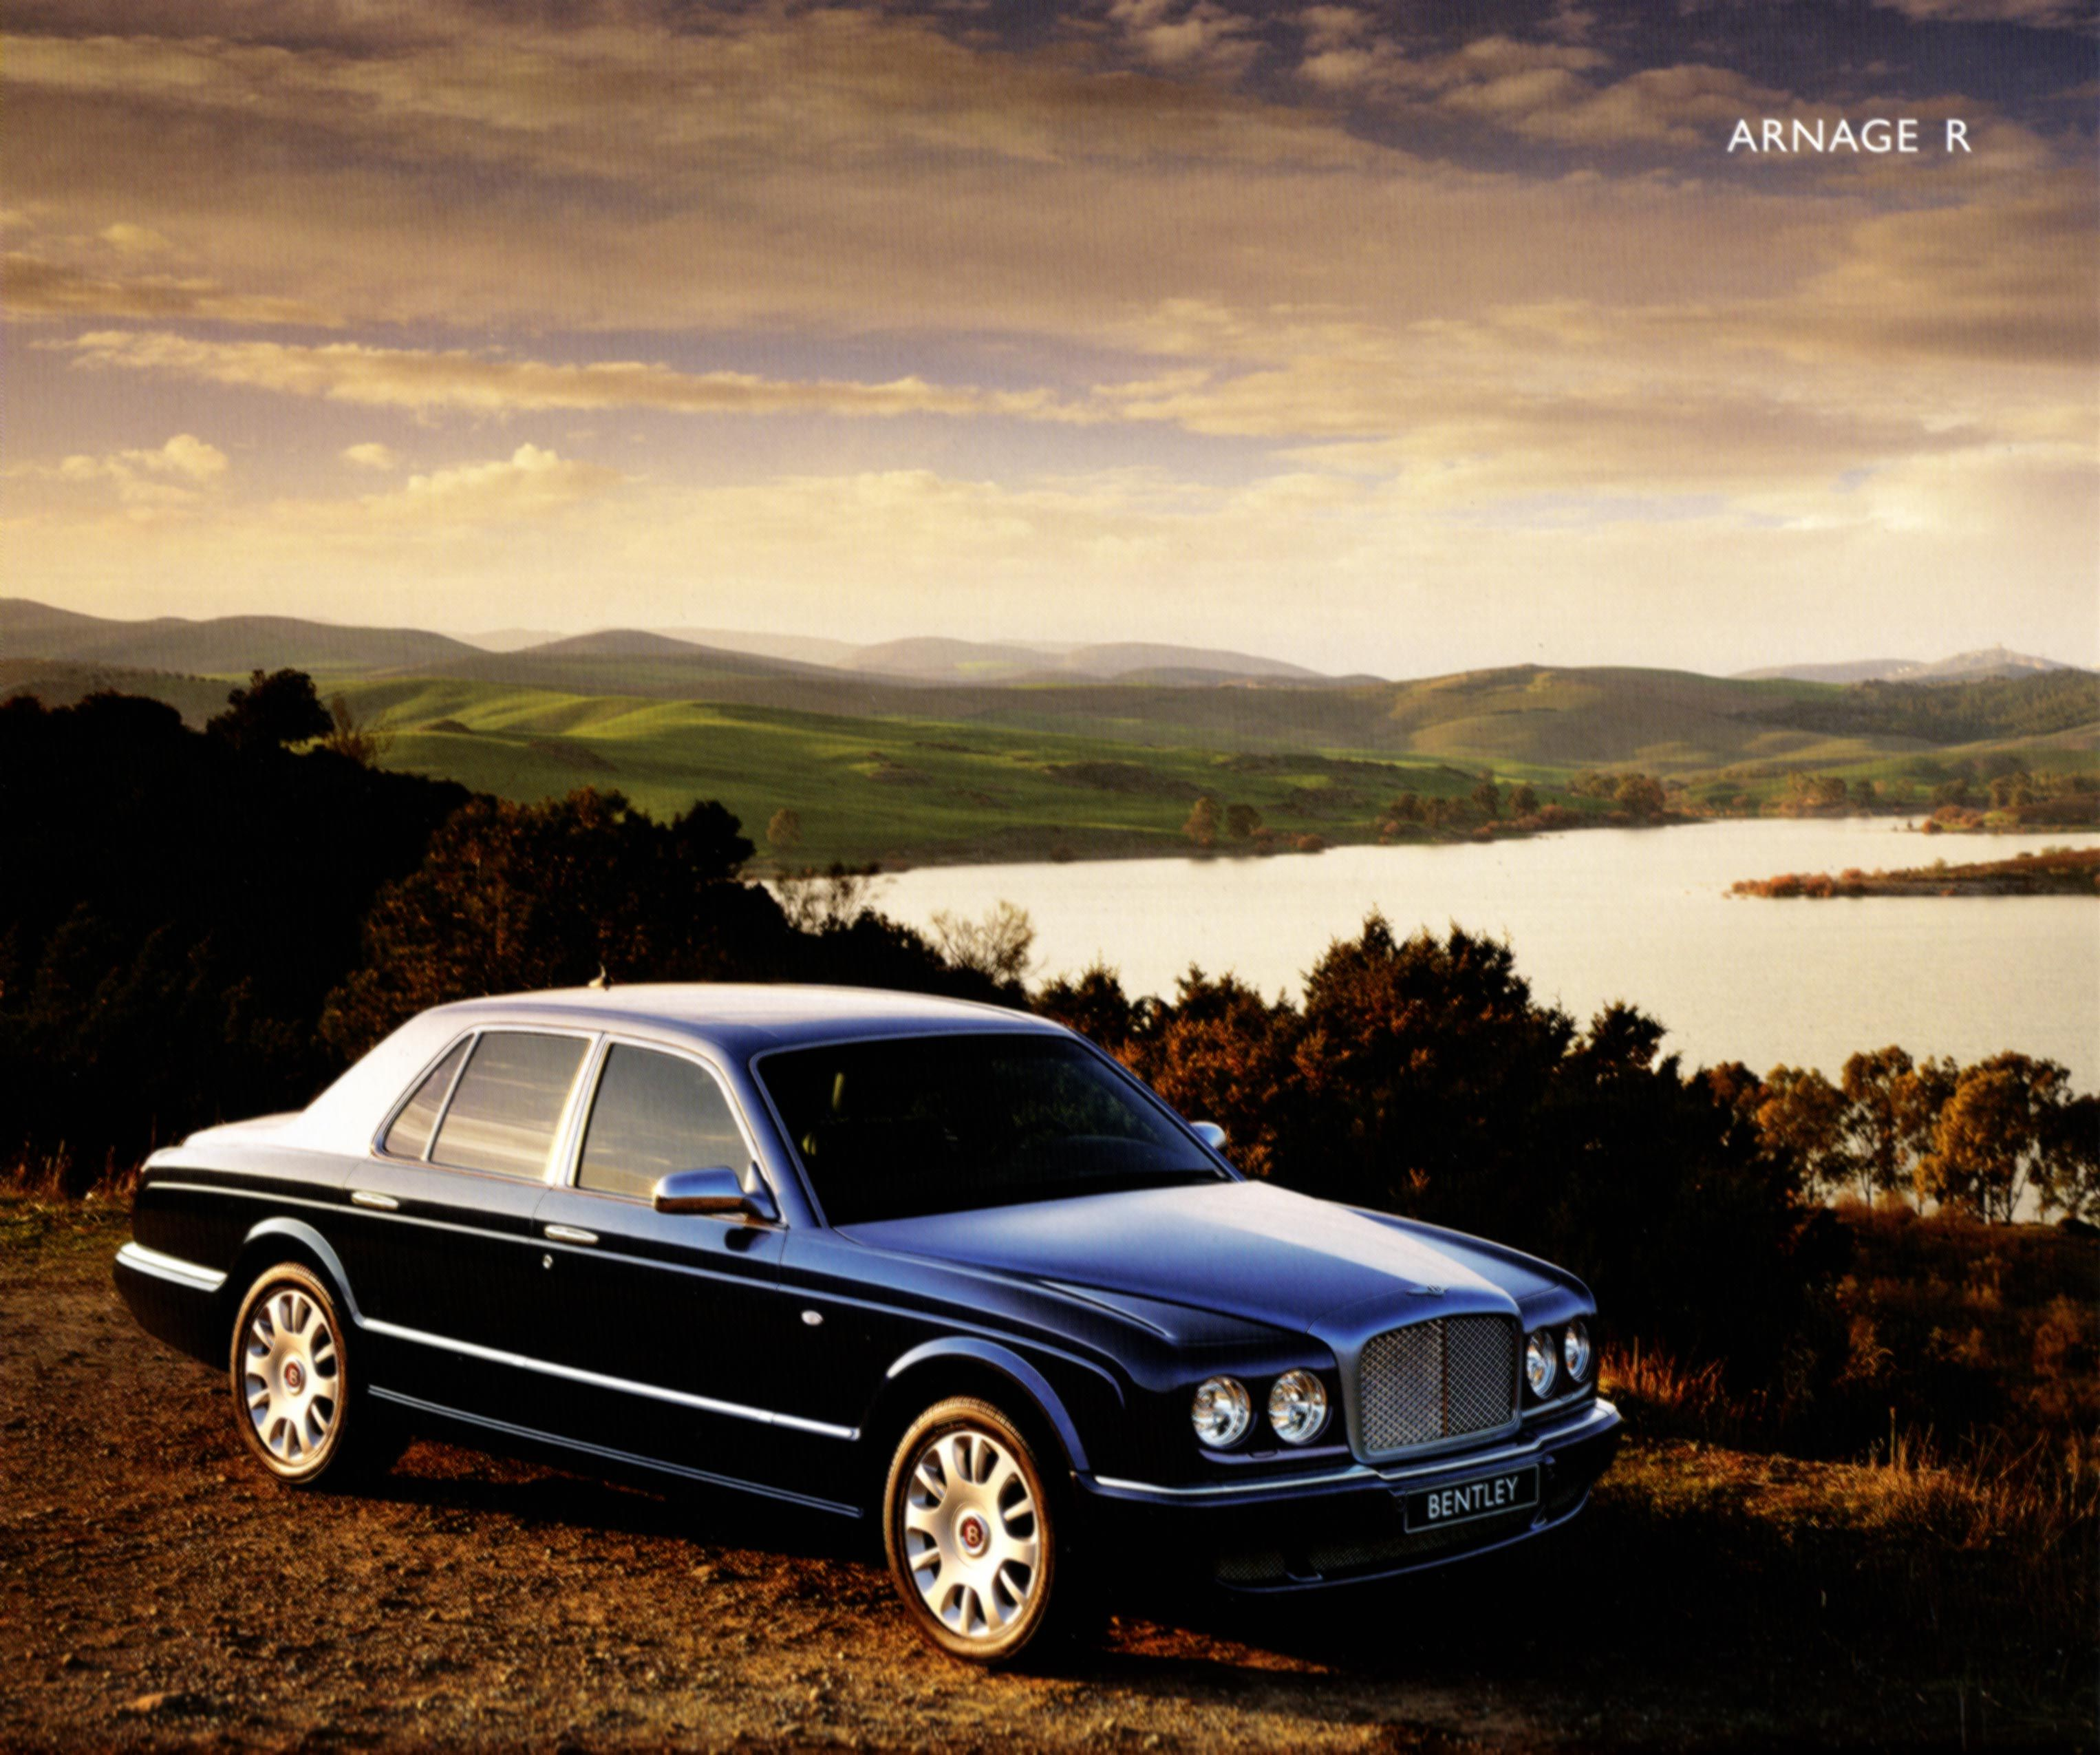 2006 Arnage Bentley Continental Flying Spur Brochure